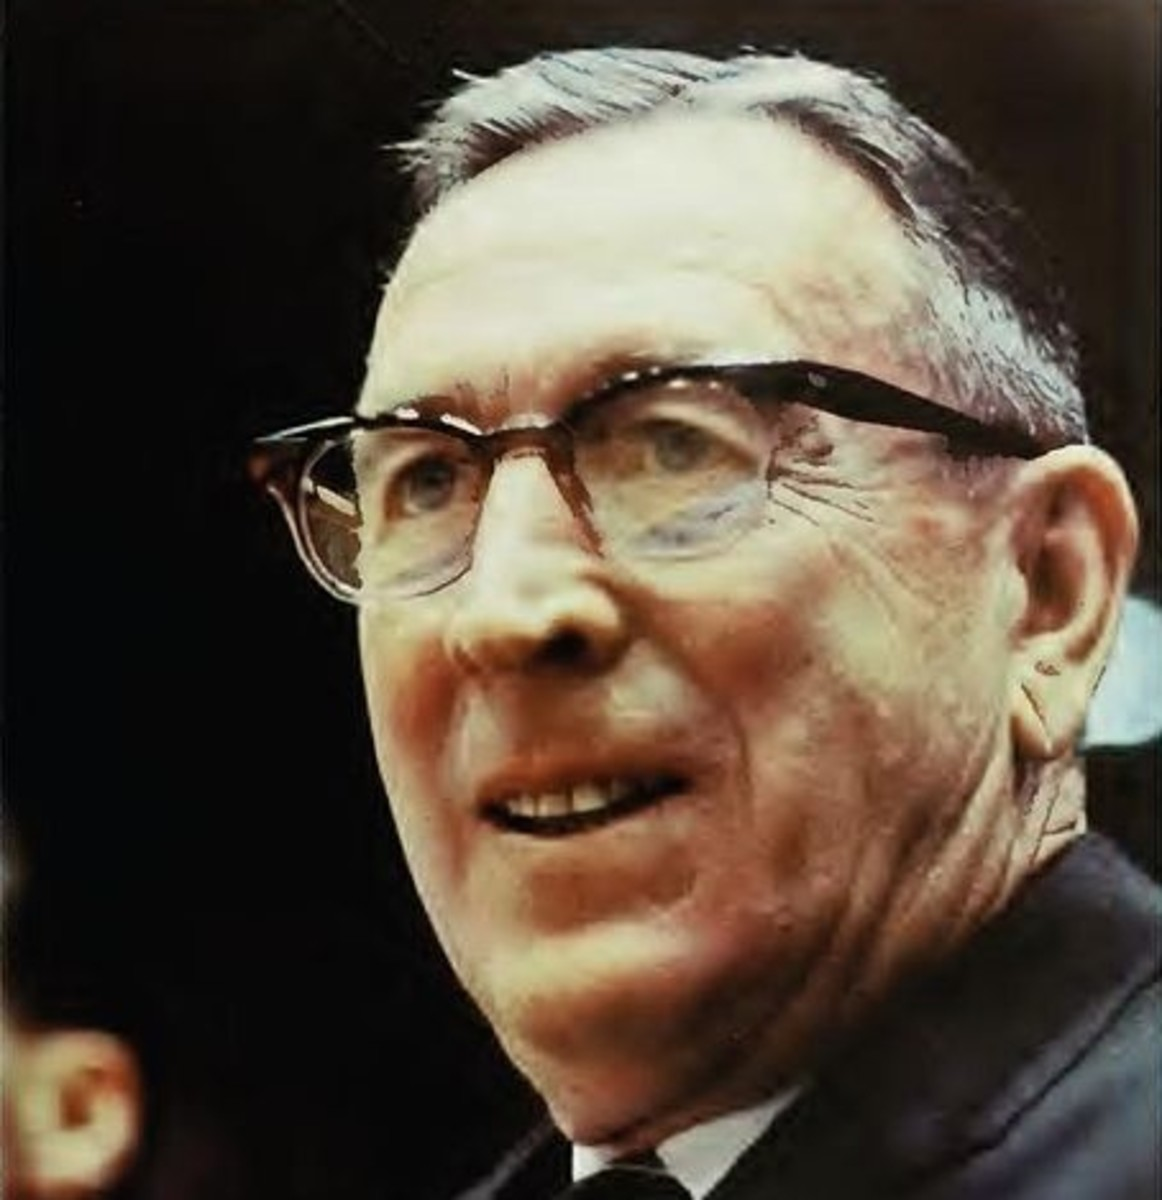 Coach John Wooden (photo circa 1972) guided UCLA from 1948-1975, including 10 national championships, an 88-game winning streak, and two other winning streaks of 40+ games.